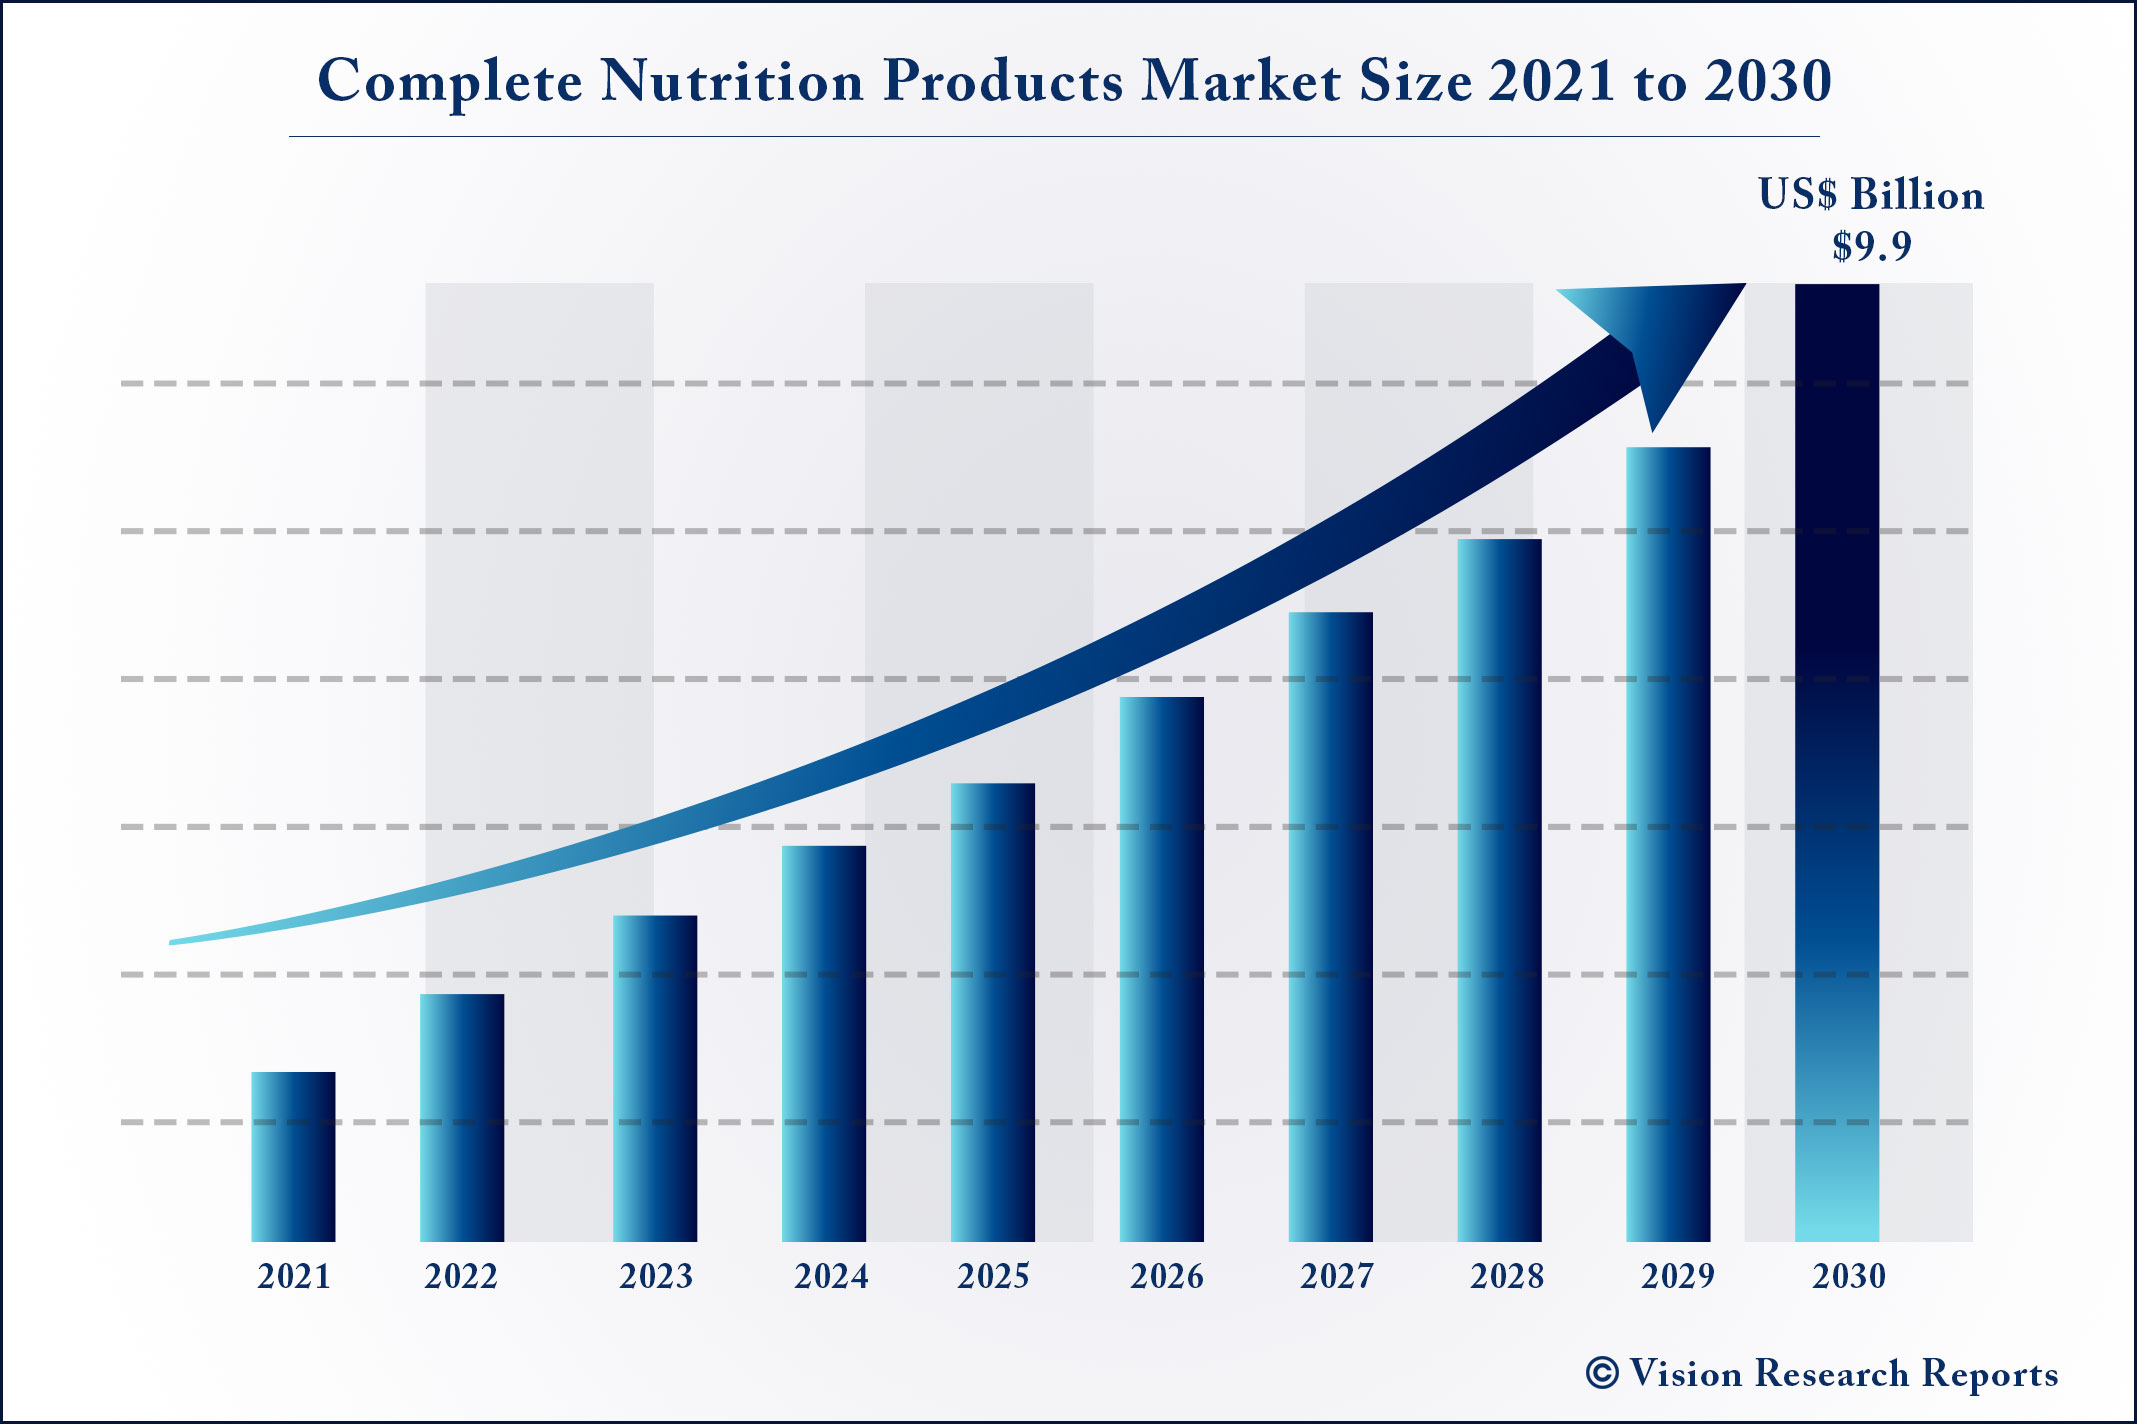 Complete Nutrition Products Market Size 2021 to 2030